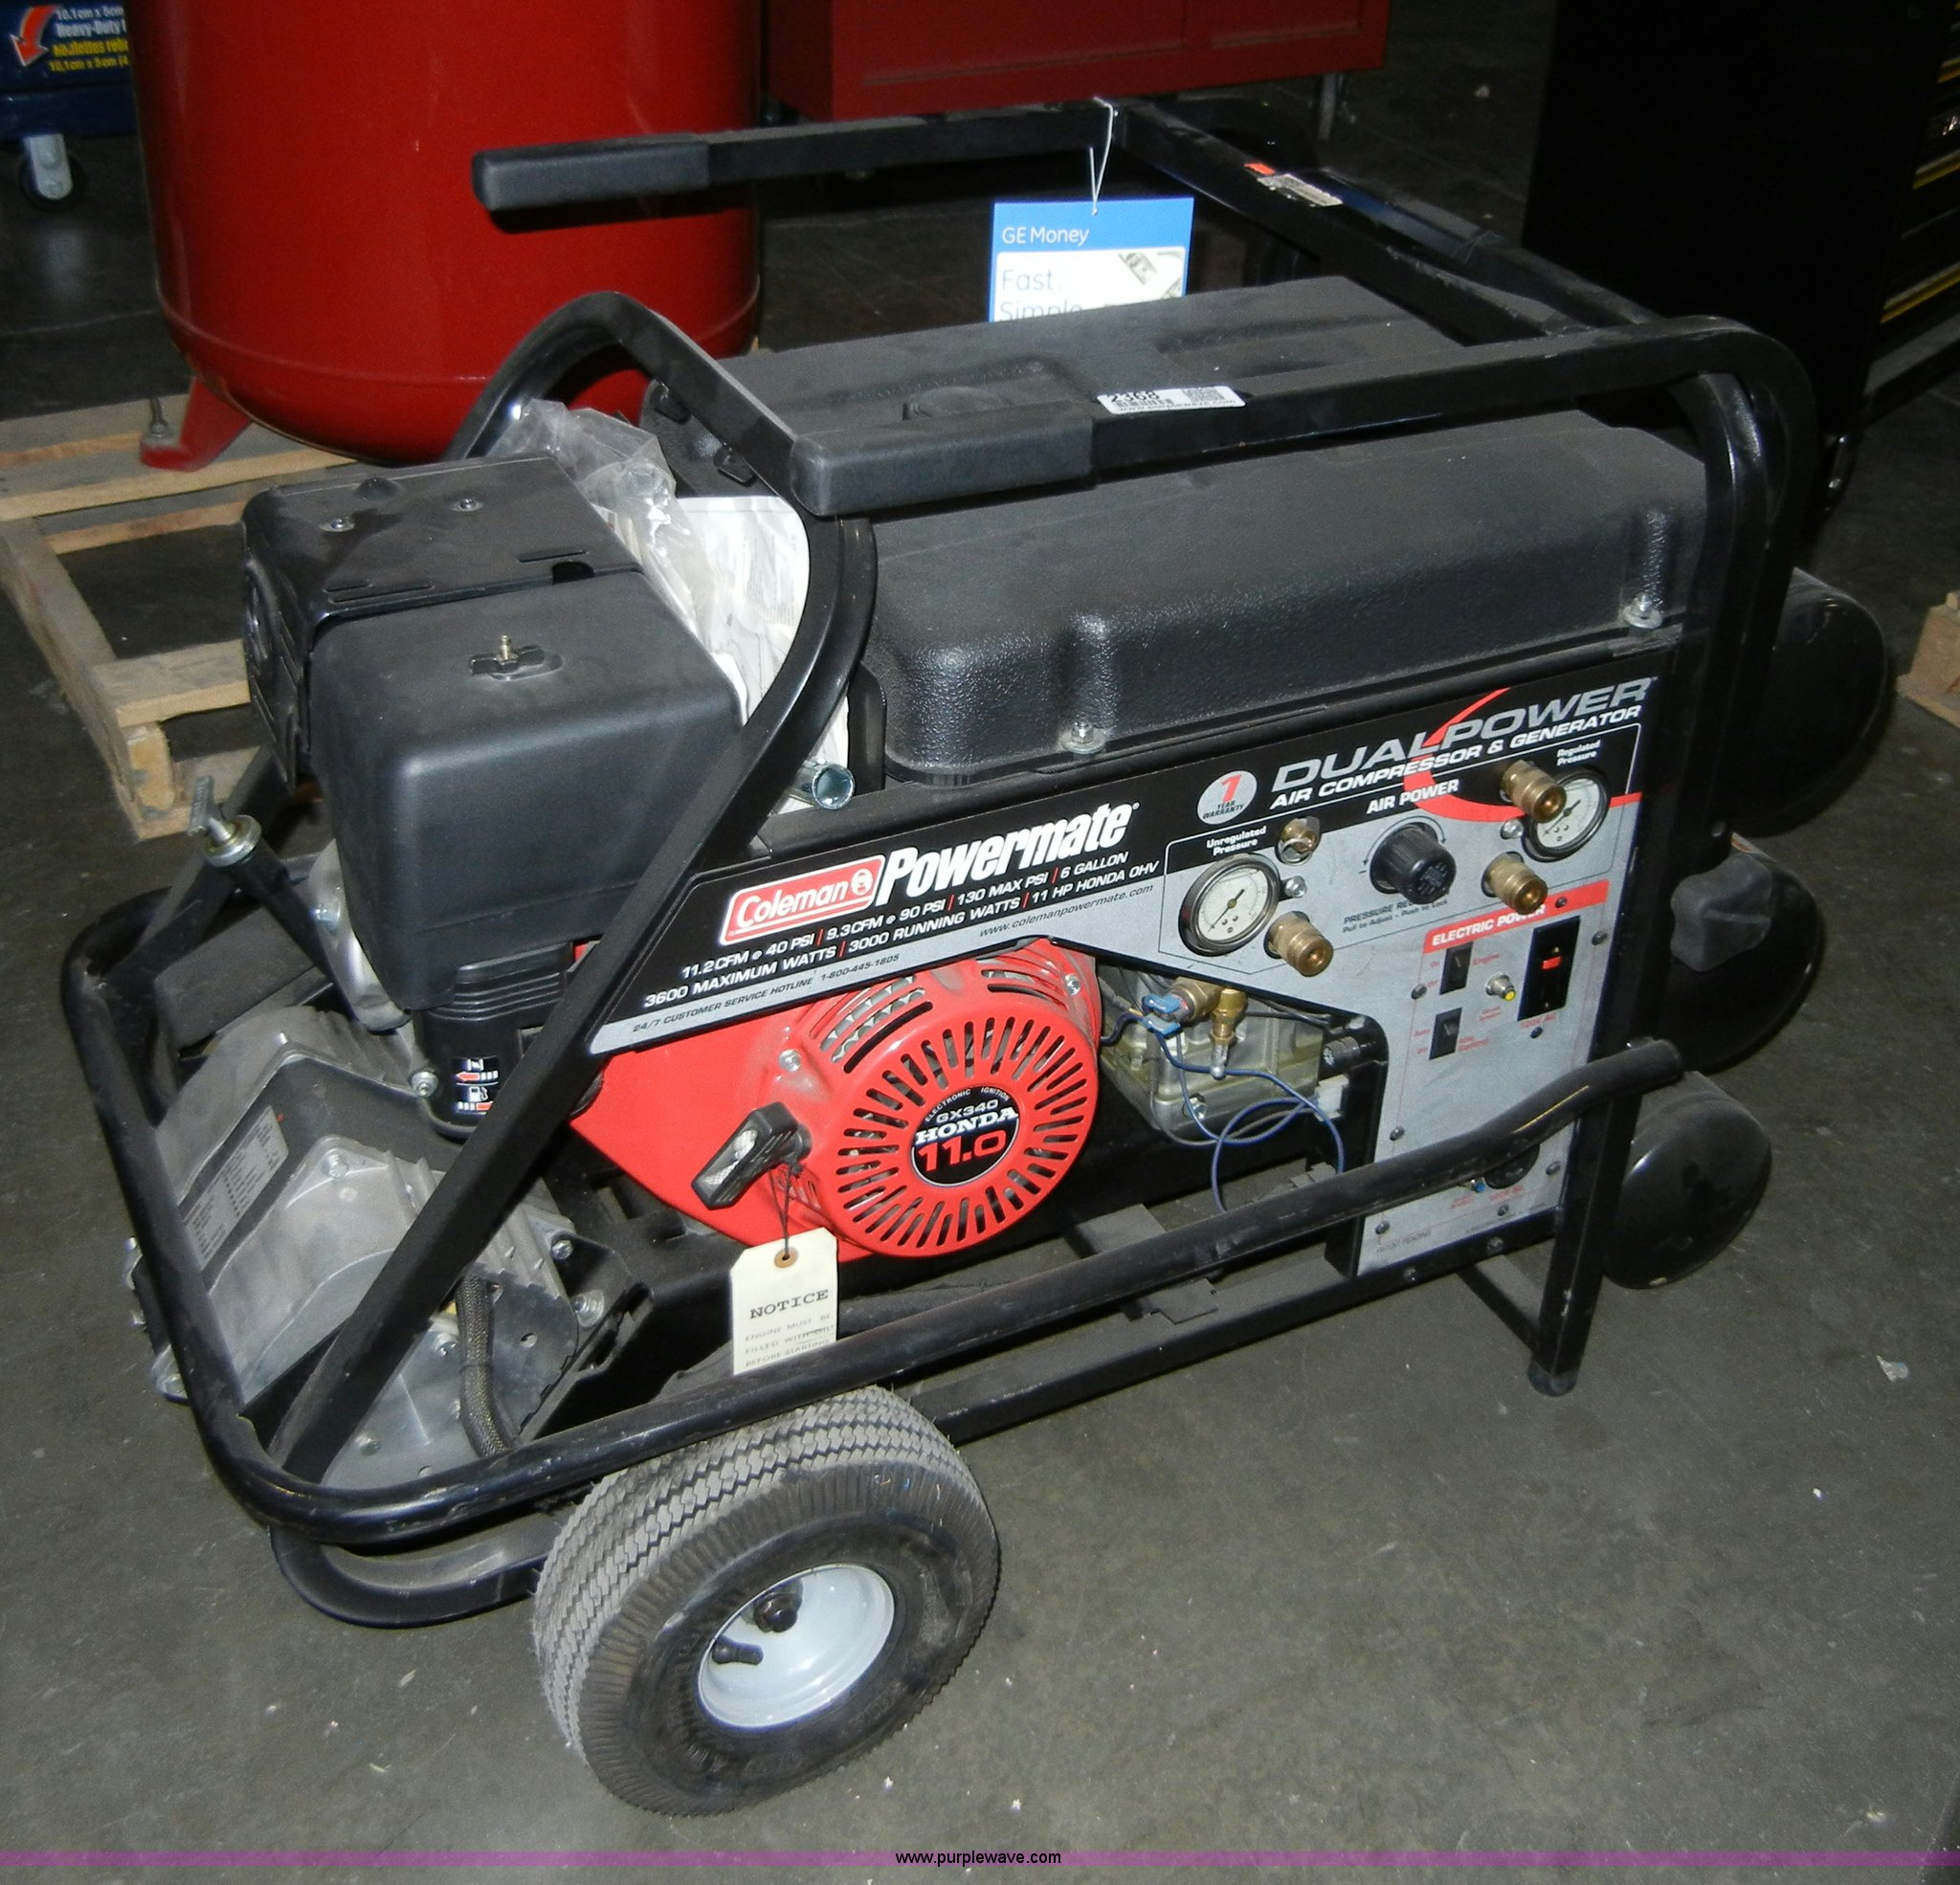 Coleman Powermate Dual Power Air Compressor And Generator For Sale In Kansas